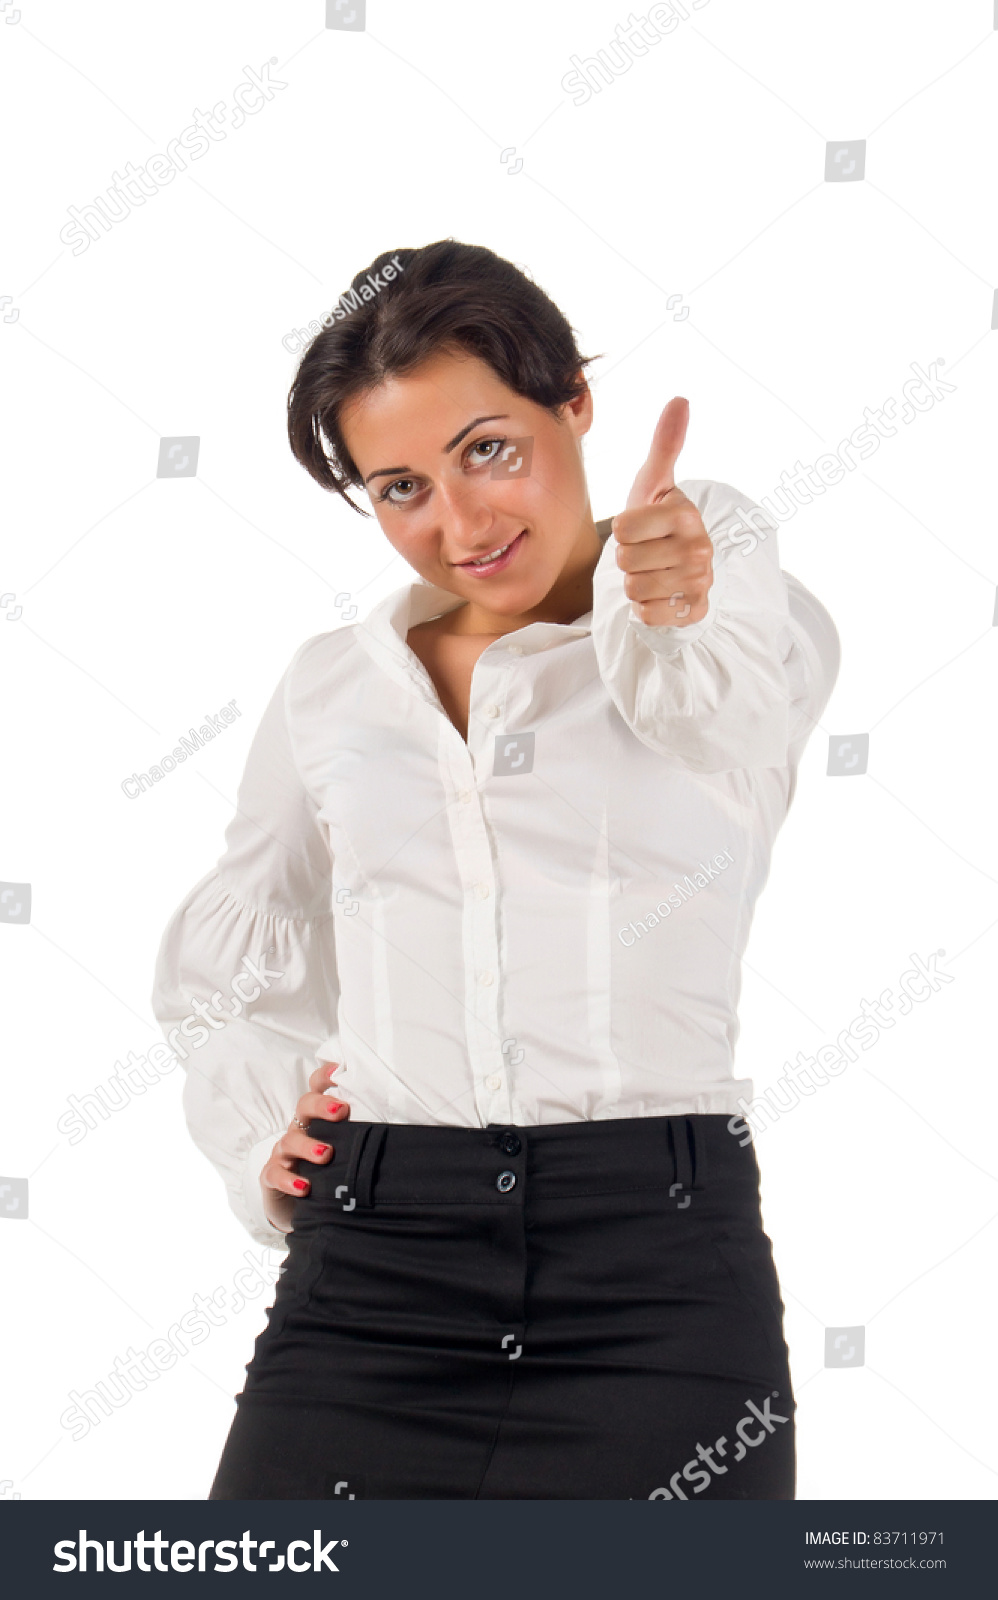 877896d9401 Dark haired white blouse and black skirt dressed young business woman  smiles and set thumb up